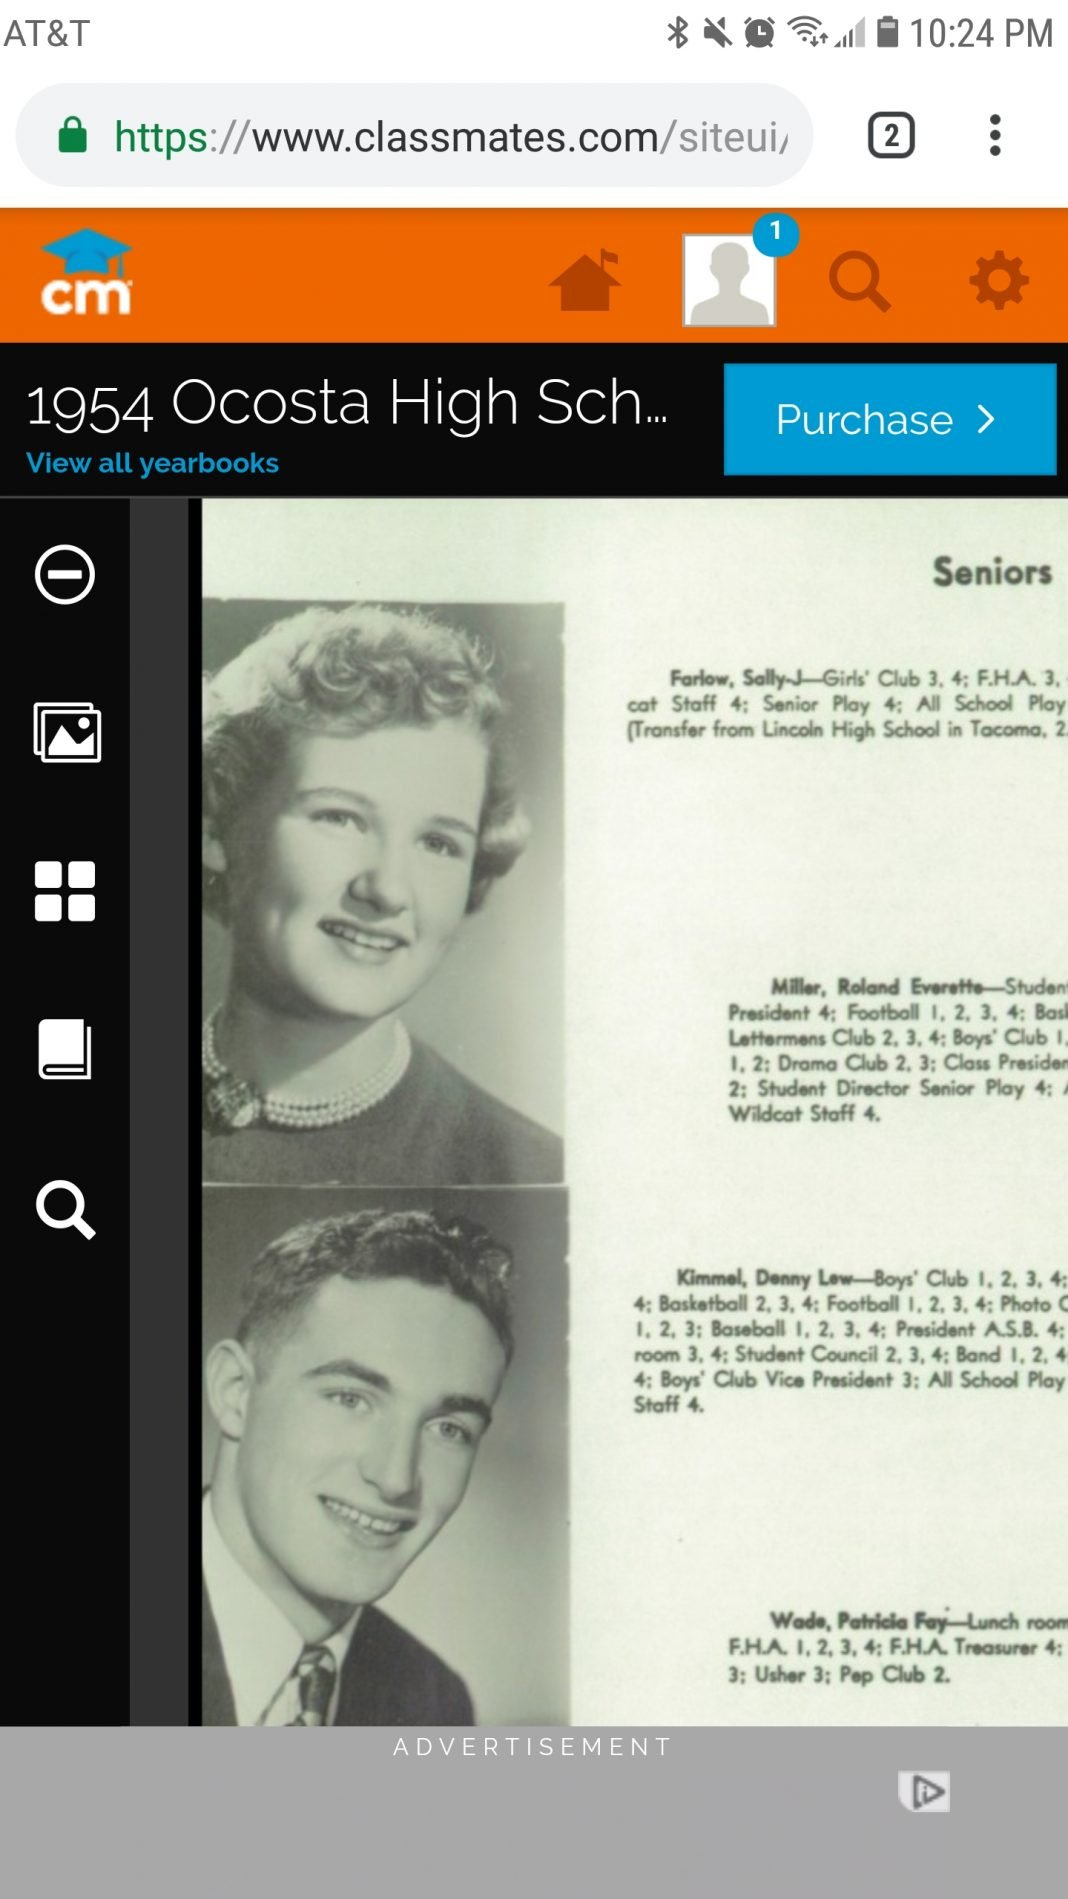 asking for help finding my wifes biological grandmother